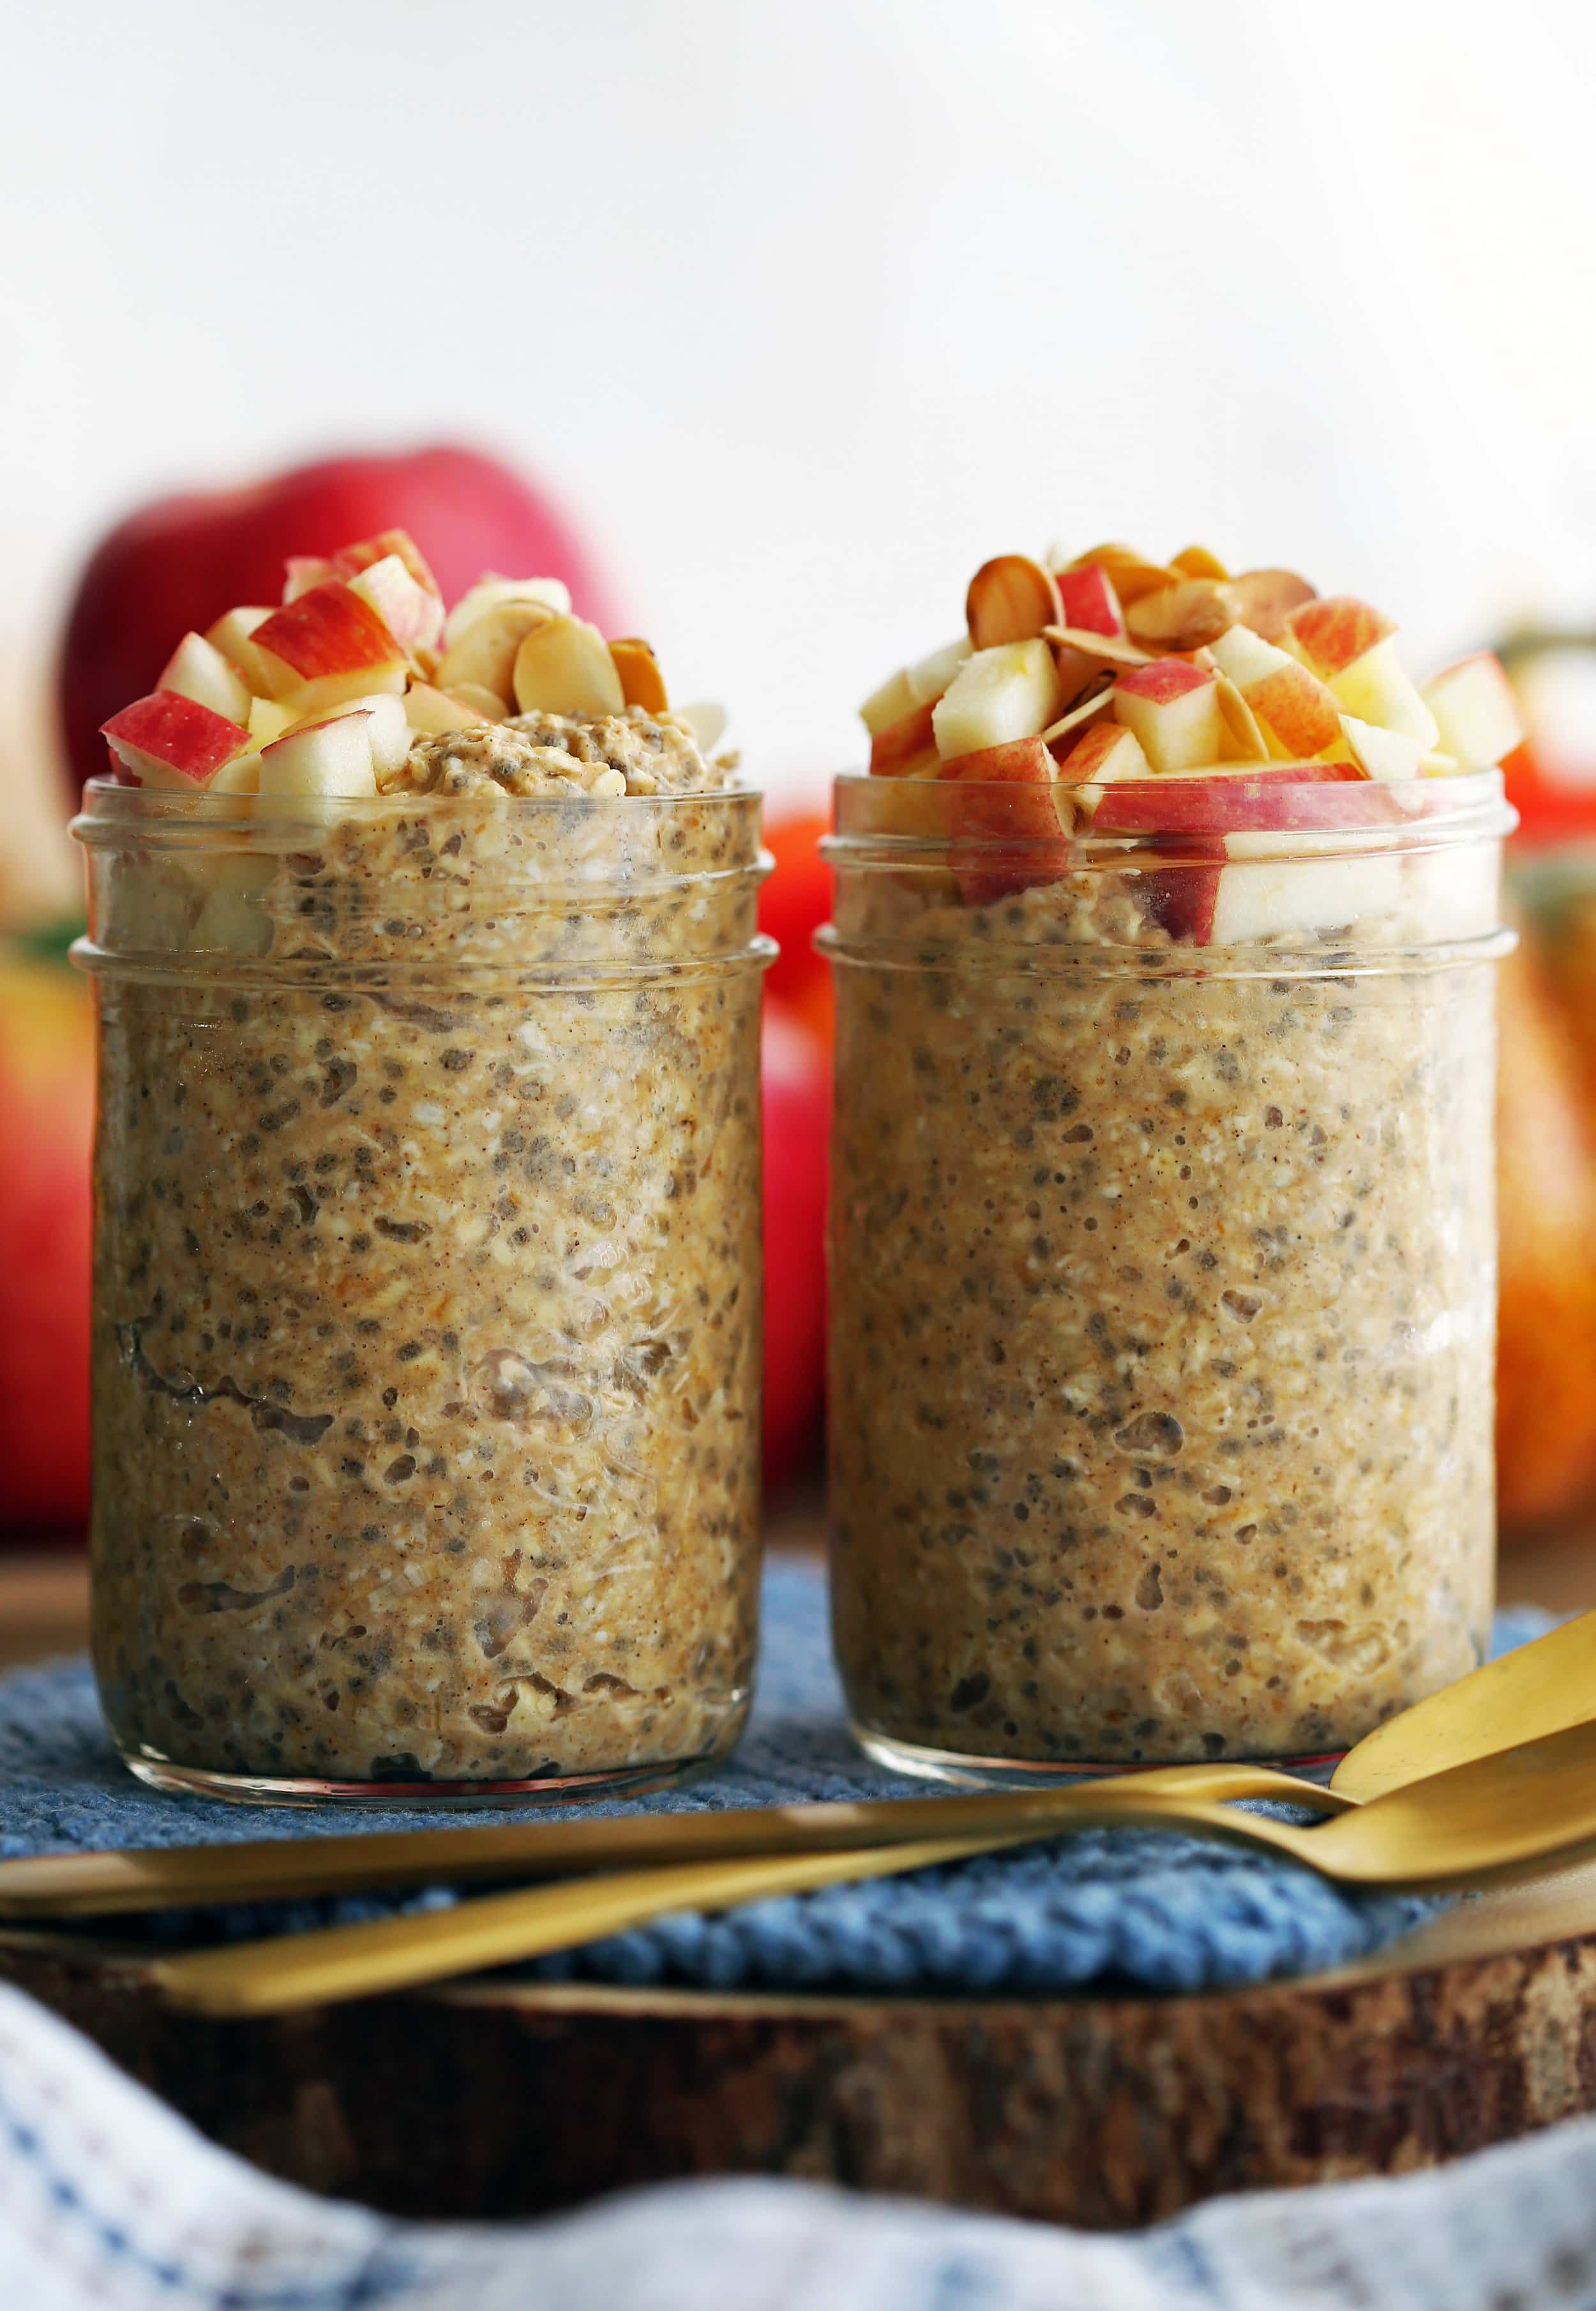 Closeup side view of two jars full of chai spiced pumpkin overnight oats with apple and almond topping.